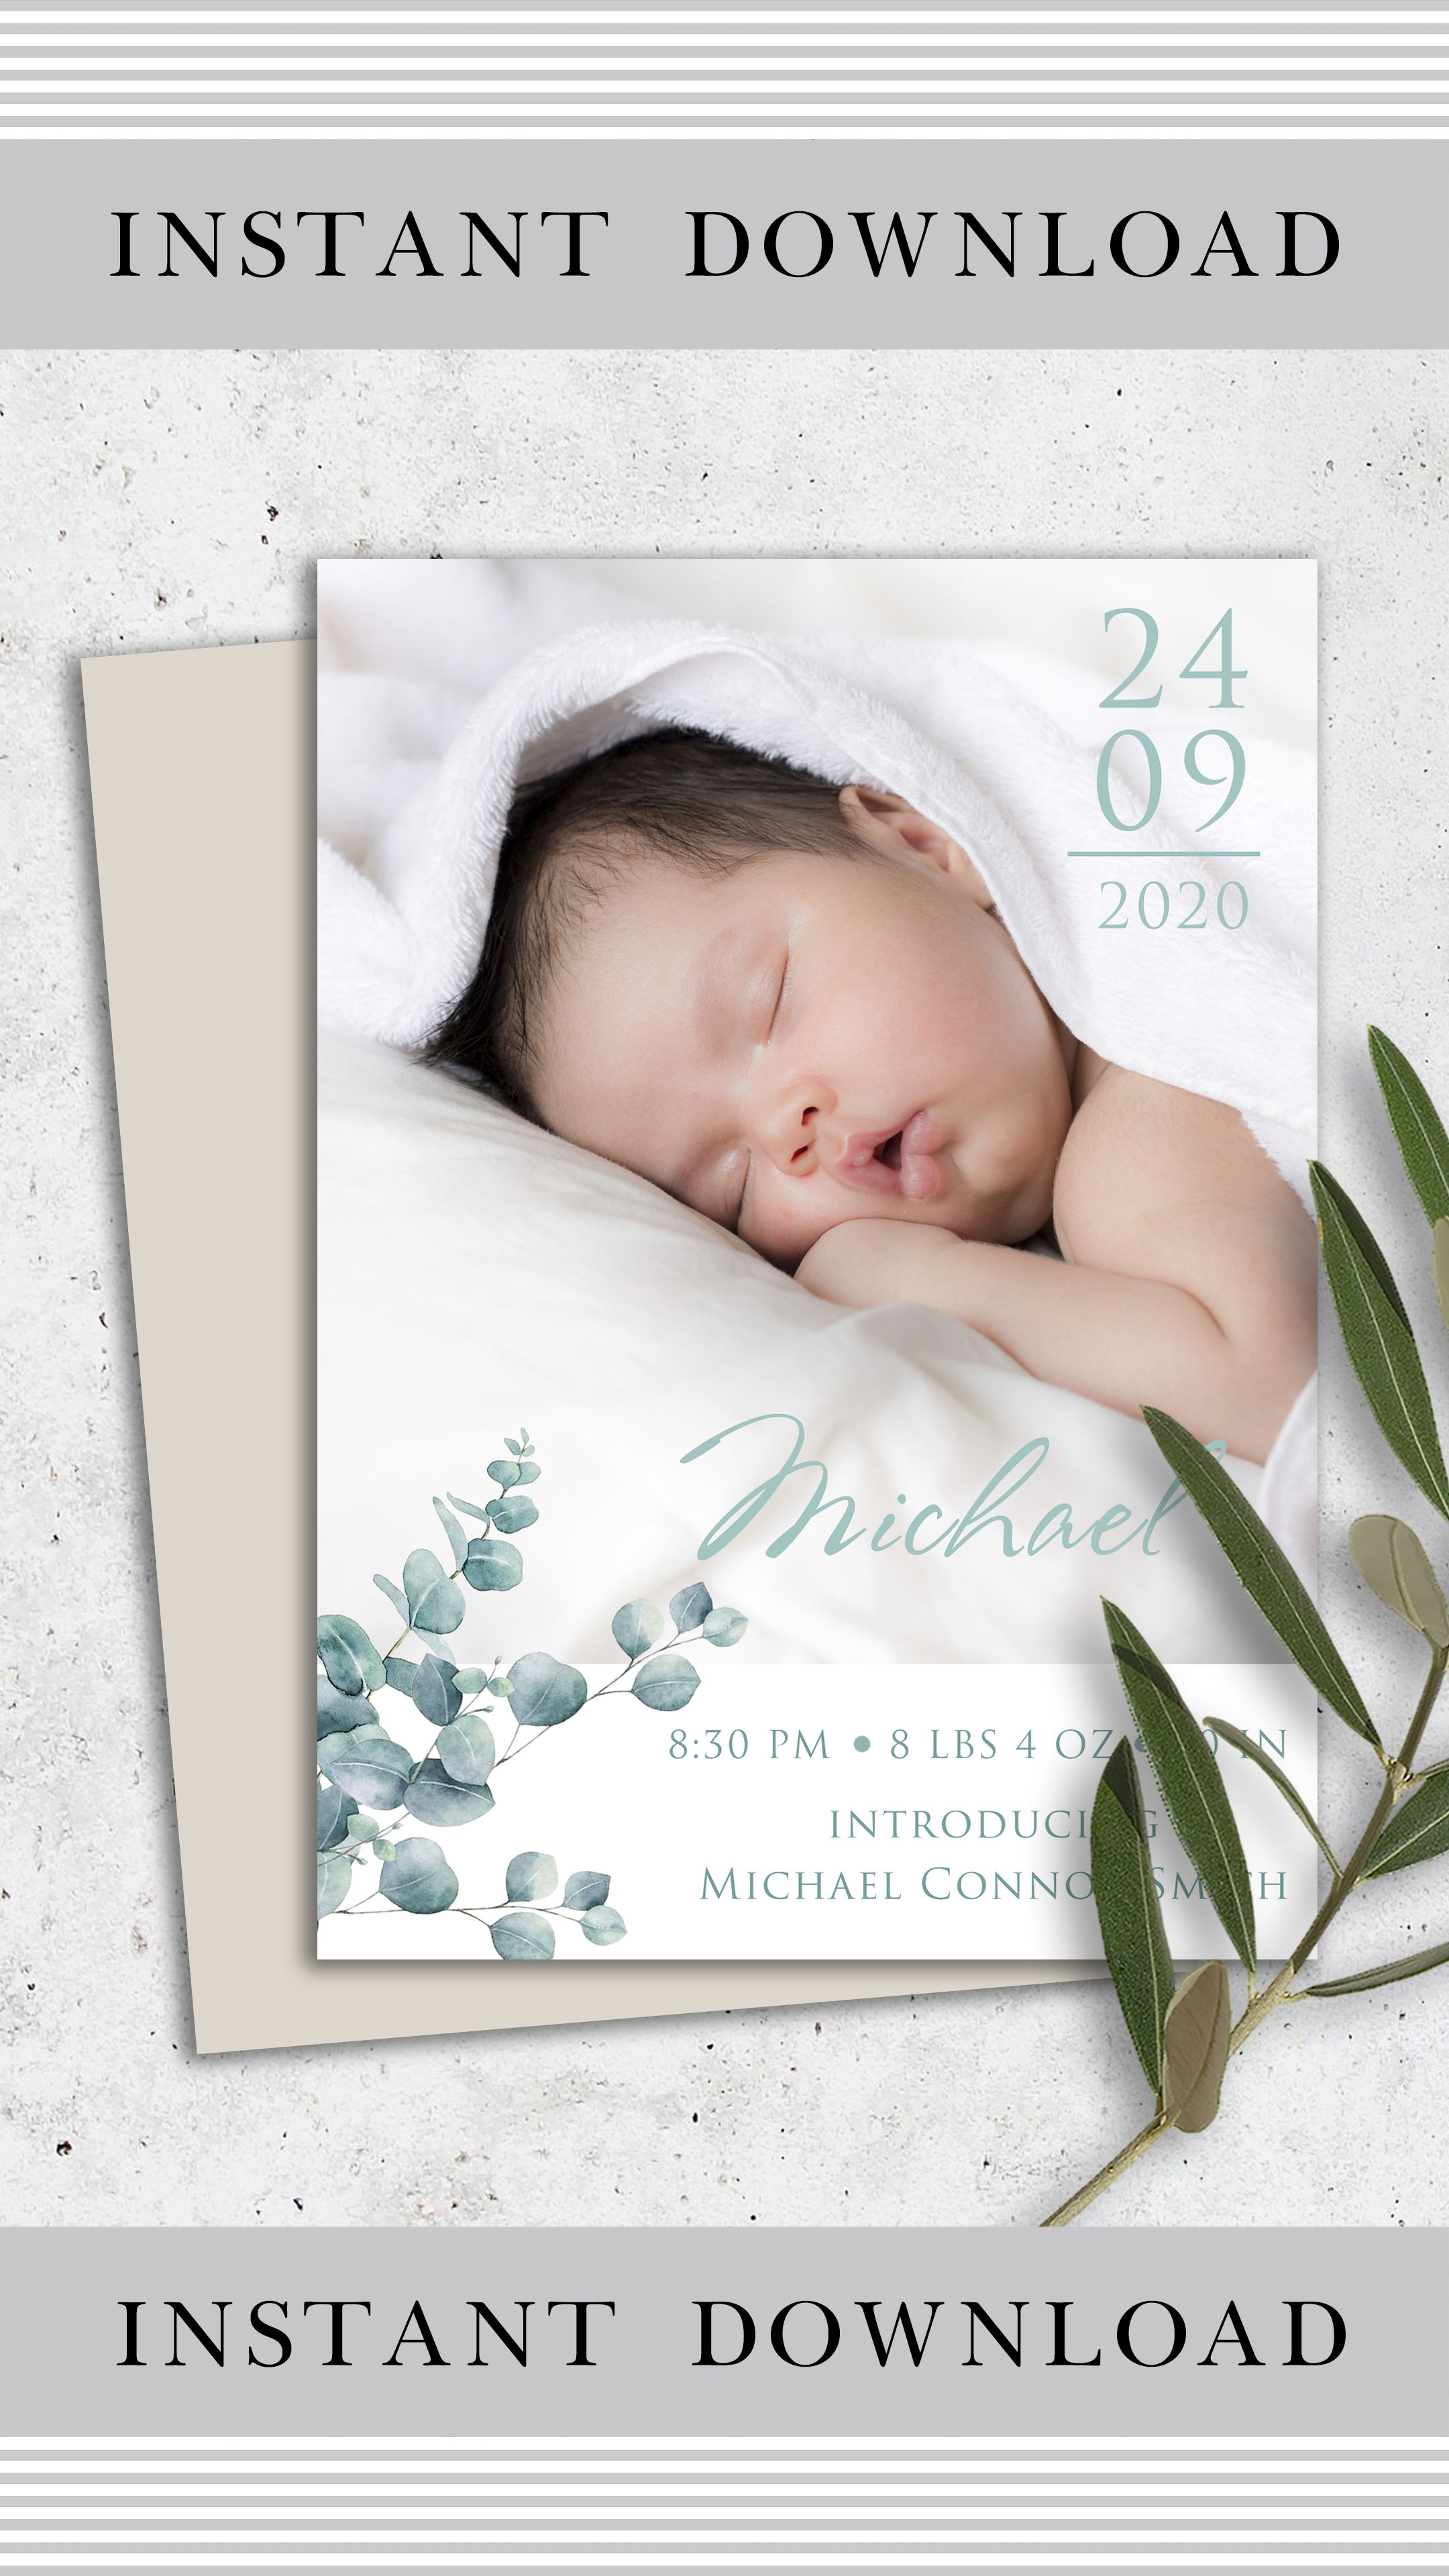 Custom Baby Birth Announcement Template Card Template With Etsy Birth Announcement Template Baby Birth Cards Welcome Baby Cards